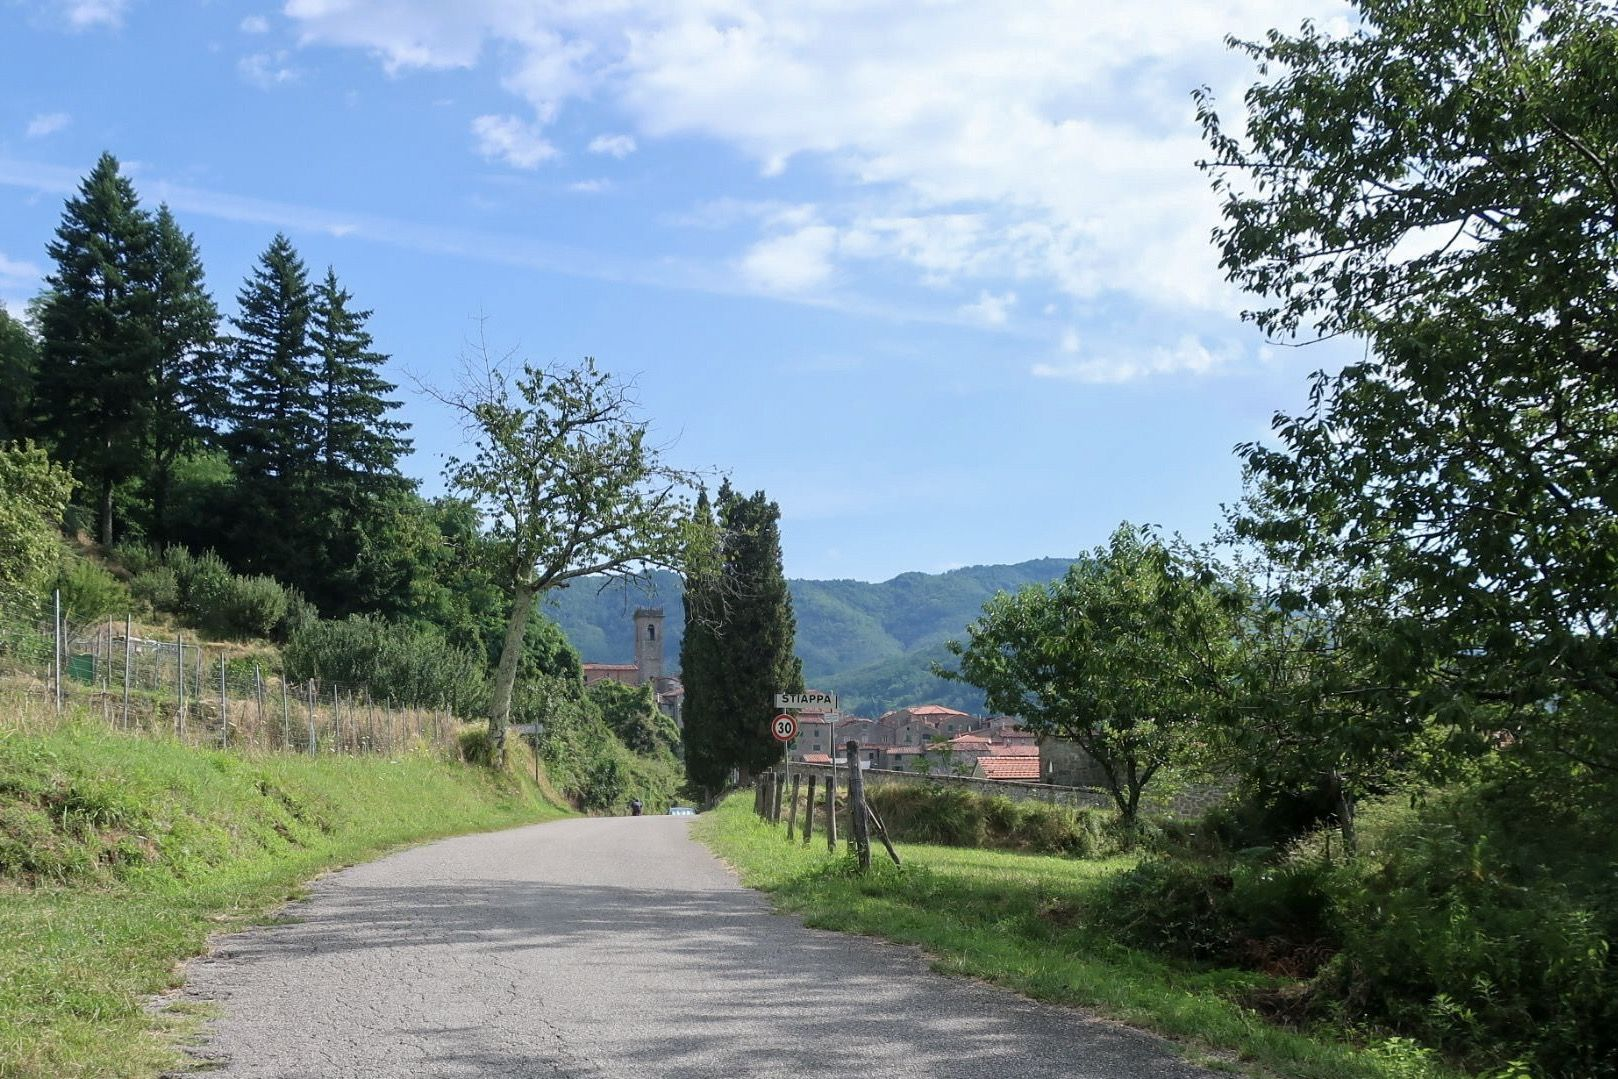 4. Pietabuona @ Macchia Antonini - 25.1km, avg. 3.3%One of many beautiful climbs in the Pistoiese mountains that show how diversified the region is. At 3% and 25 km, it makes for an enduring threshold test but with scenic mountain towns and panoramic views to look at. Once you're though Pescia, it's all about you, the bike and whatever the adventure brings.